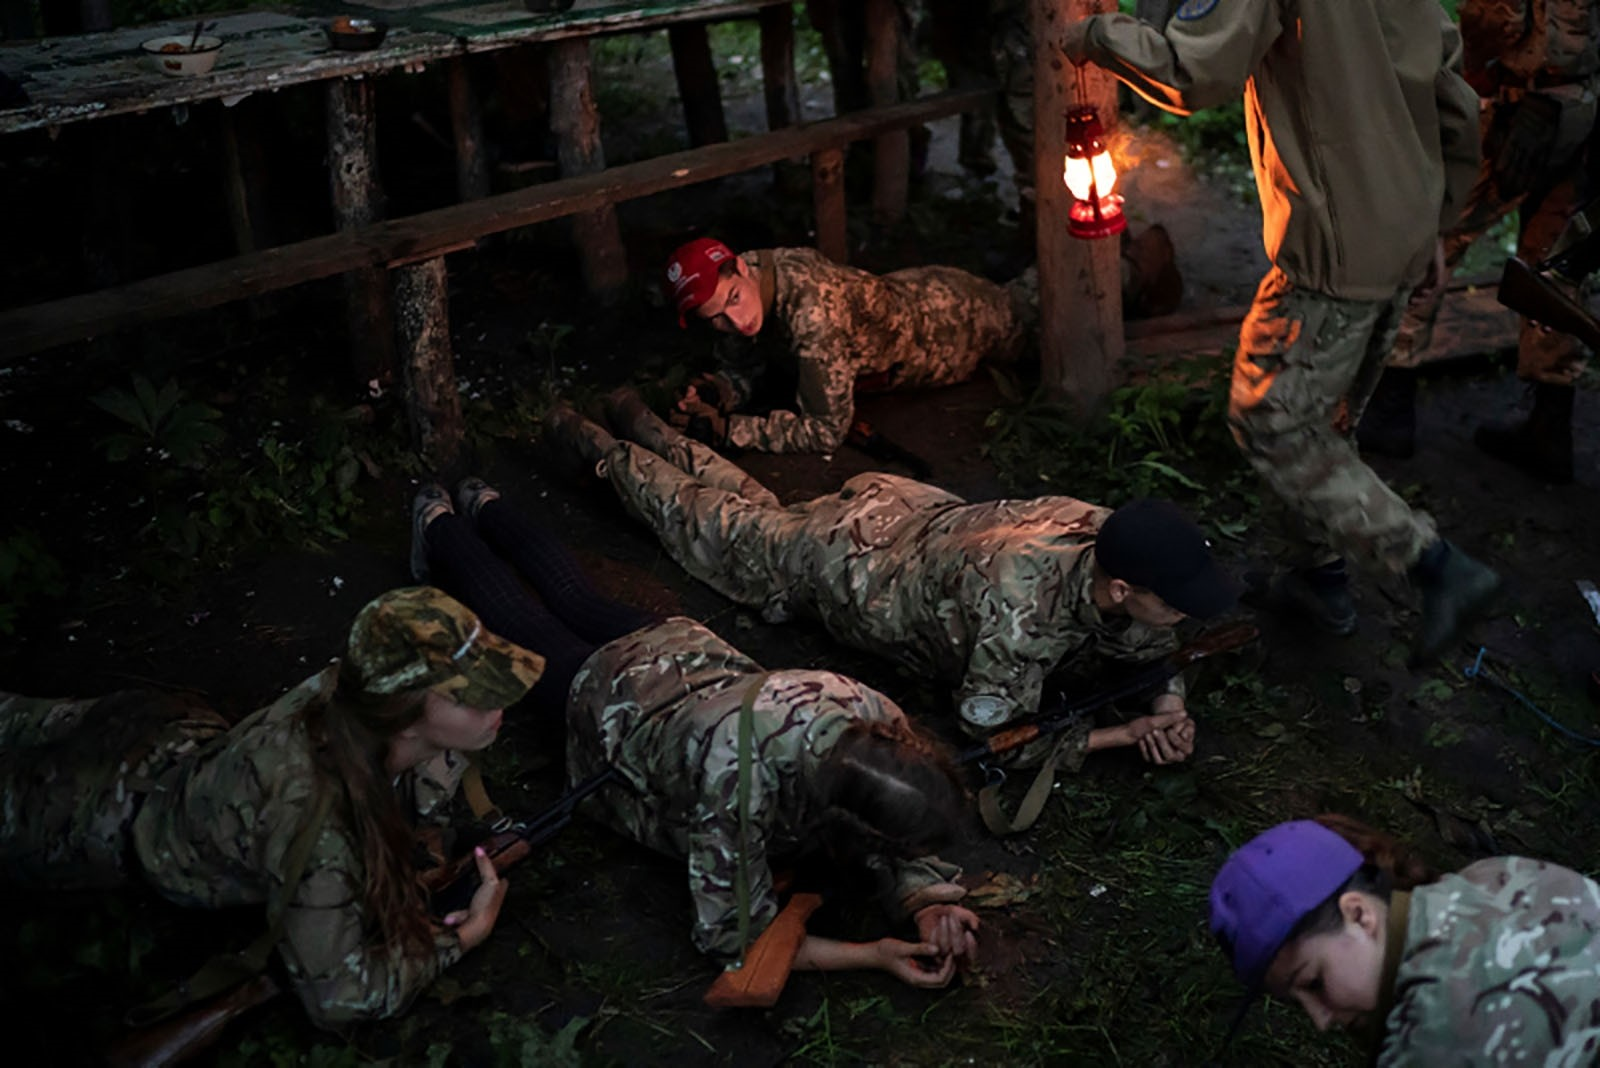 Participants hold a plank position before having dinner.